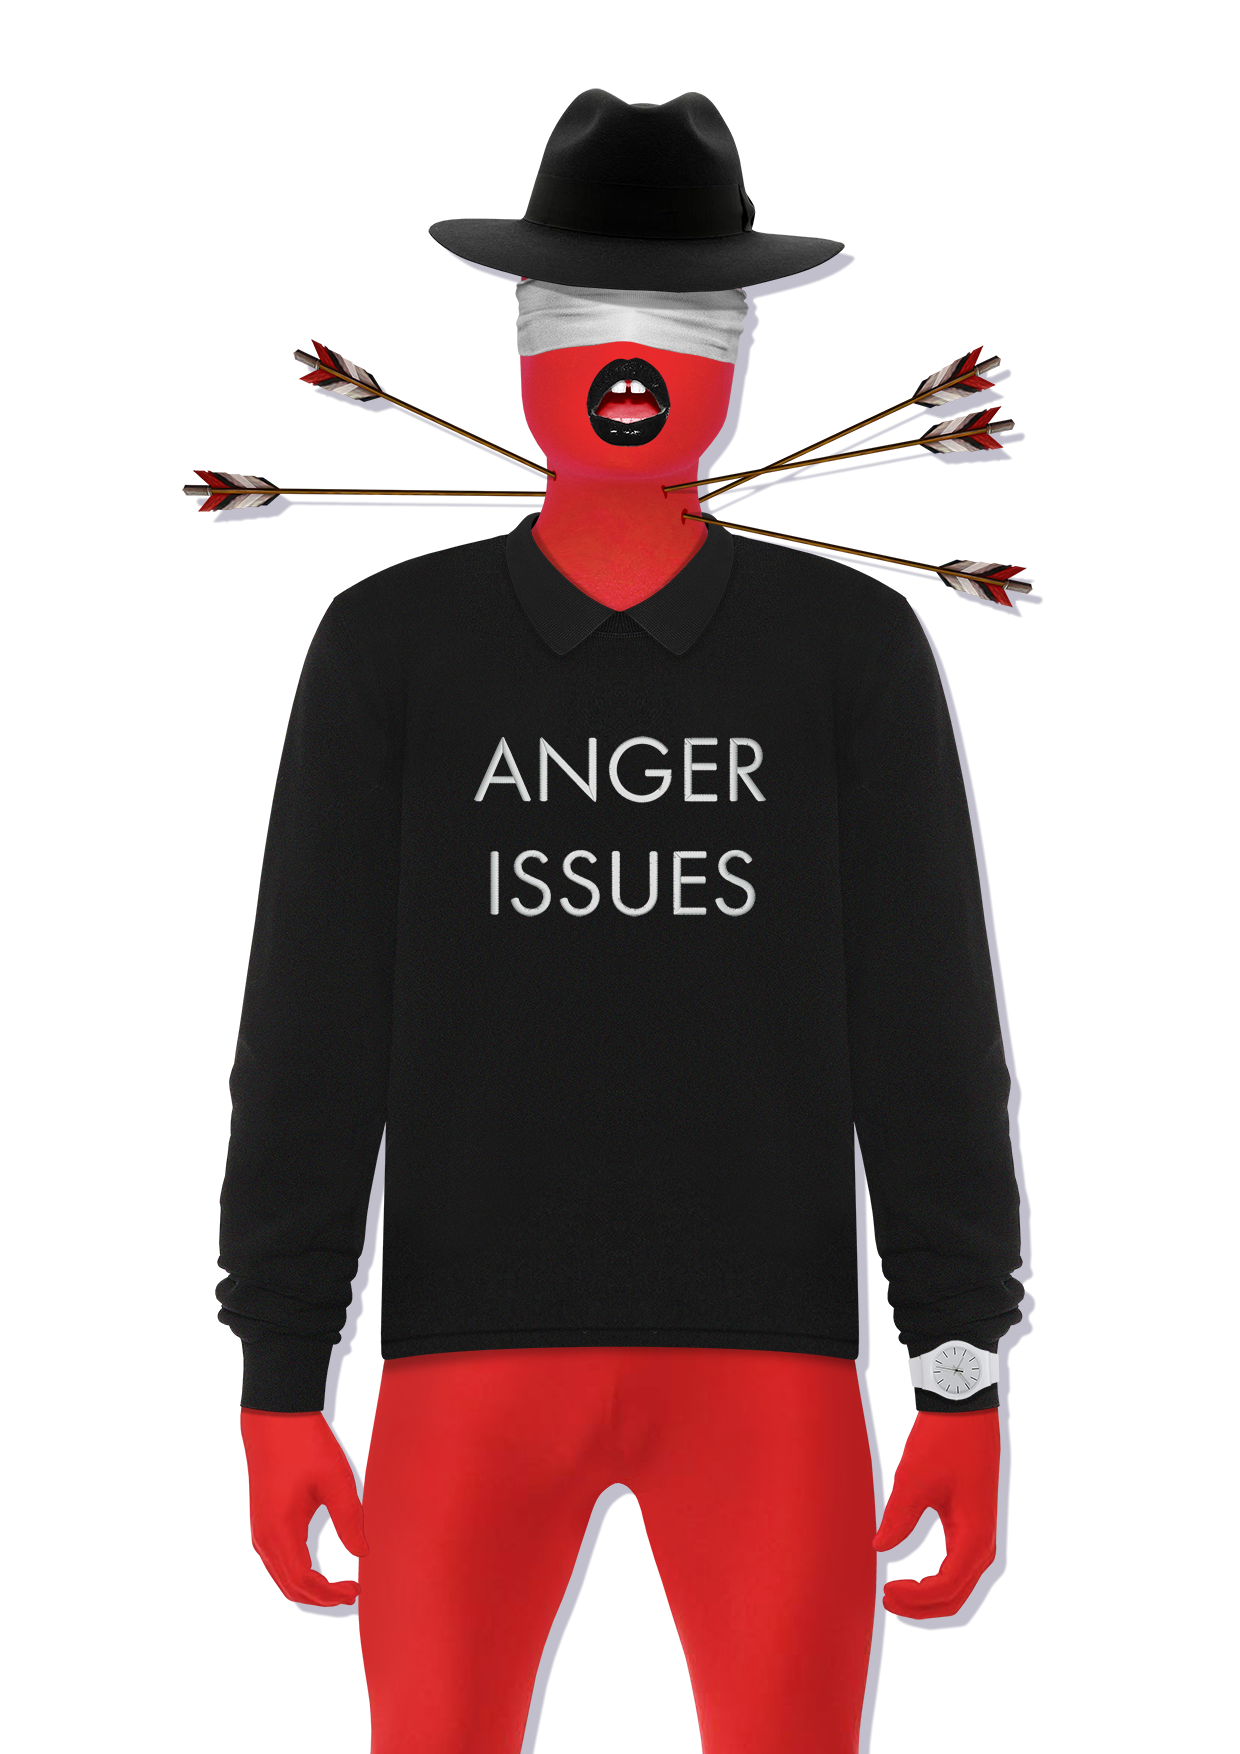 Anger Issues Neothinker Sweatshirt Black - Anger Issues text on the chest - Polo Collar Sweatshirt